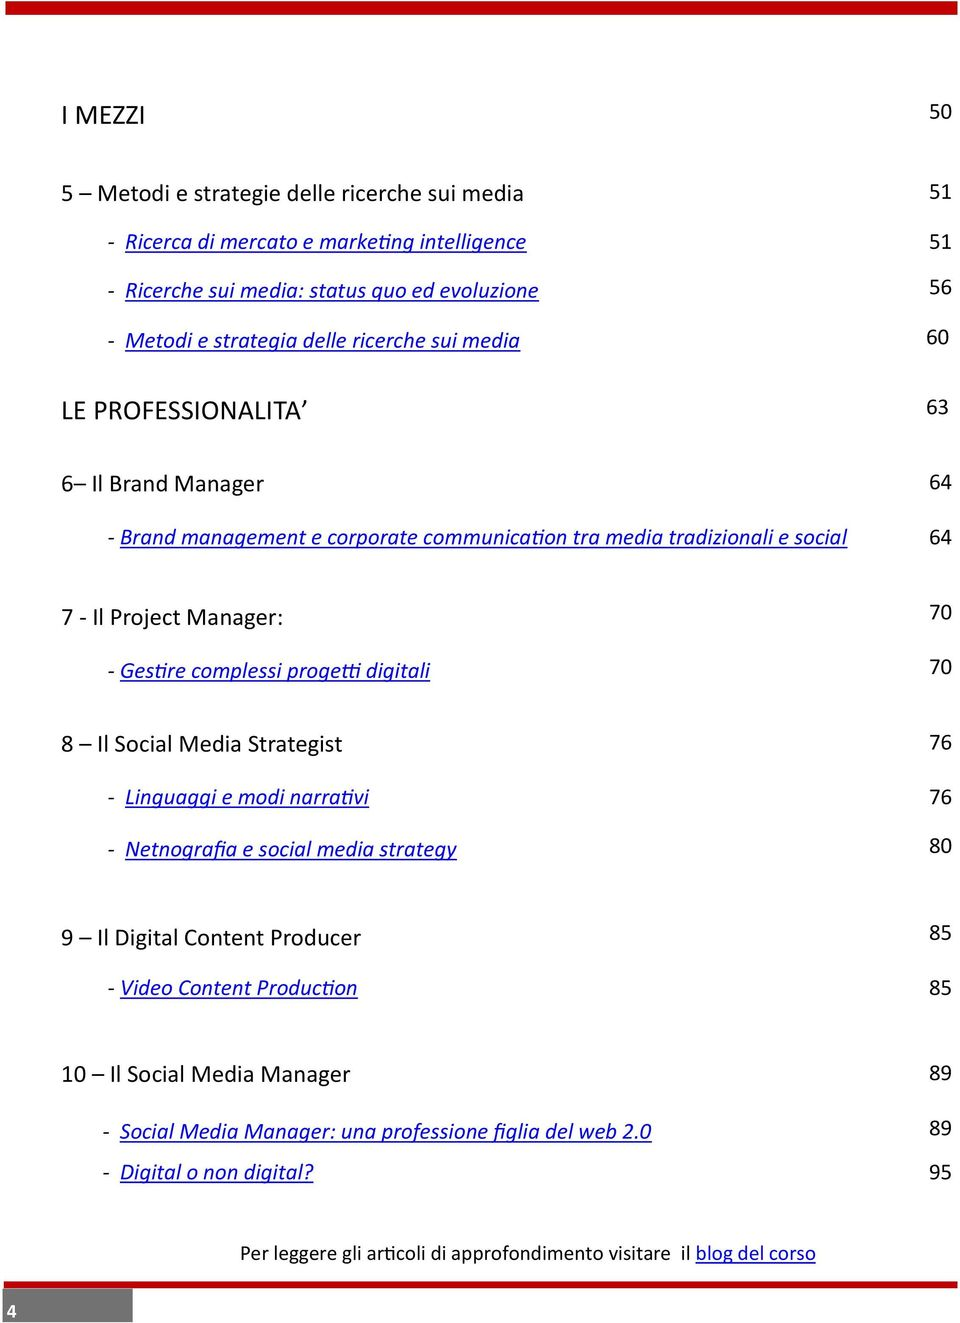 complessi progetti digitali 70 8 Il Social Media Strategist 76 - Linguaggi e modi narrativi 76 - Netnografia e social media strategy 80 9 Il Digital Content Producer 85 - Video Content